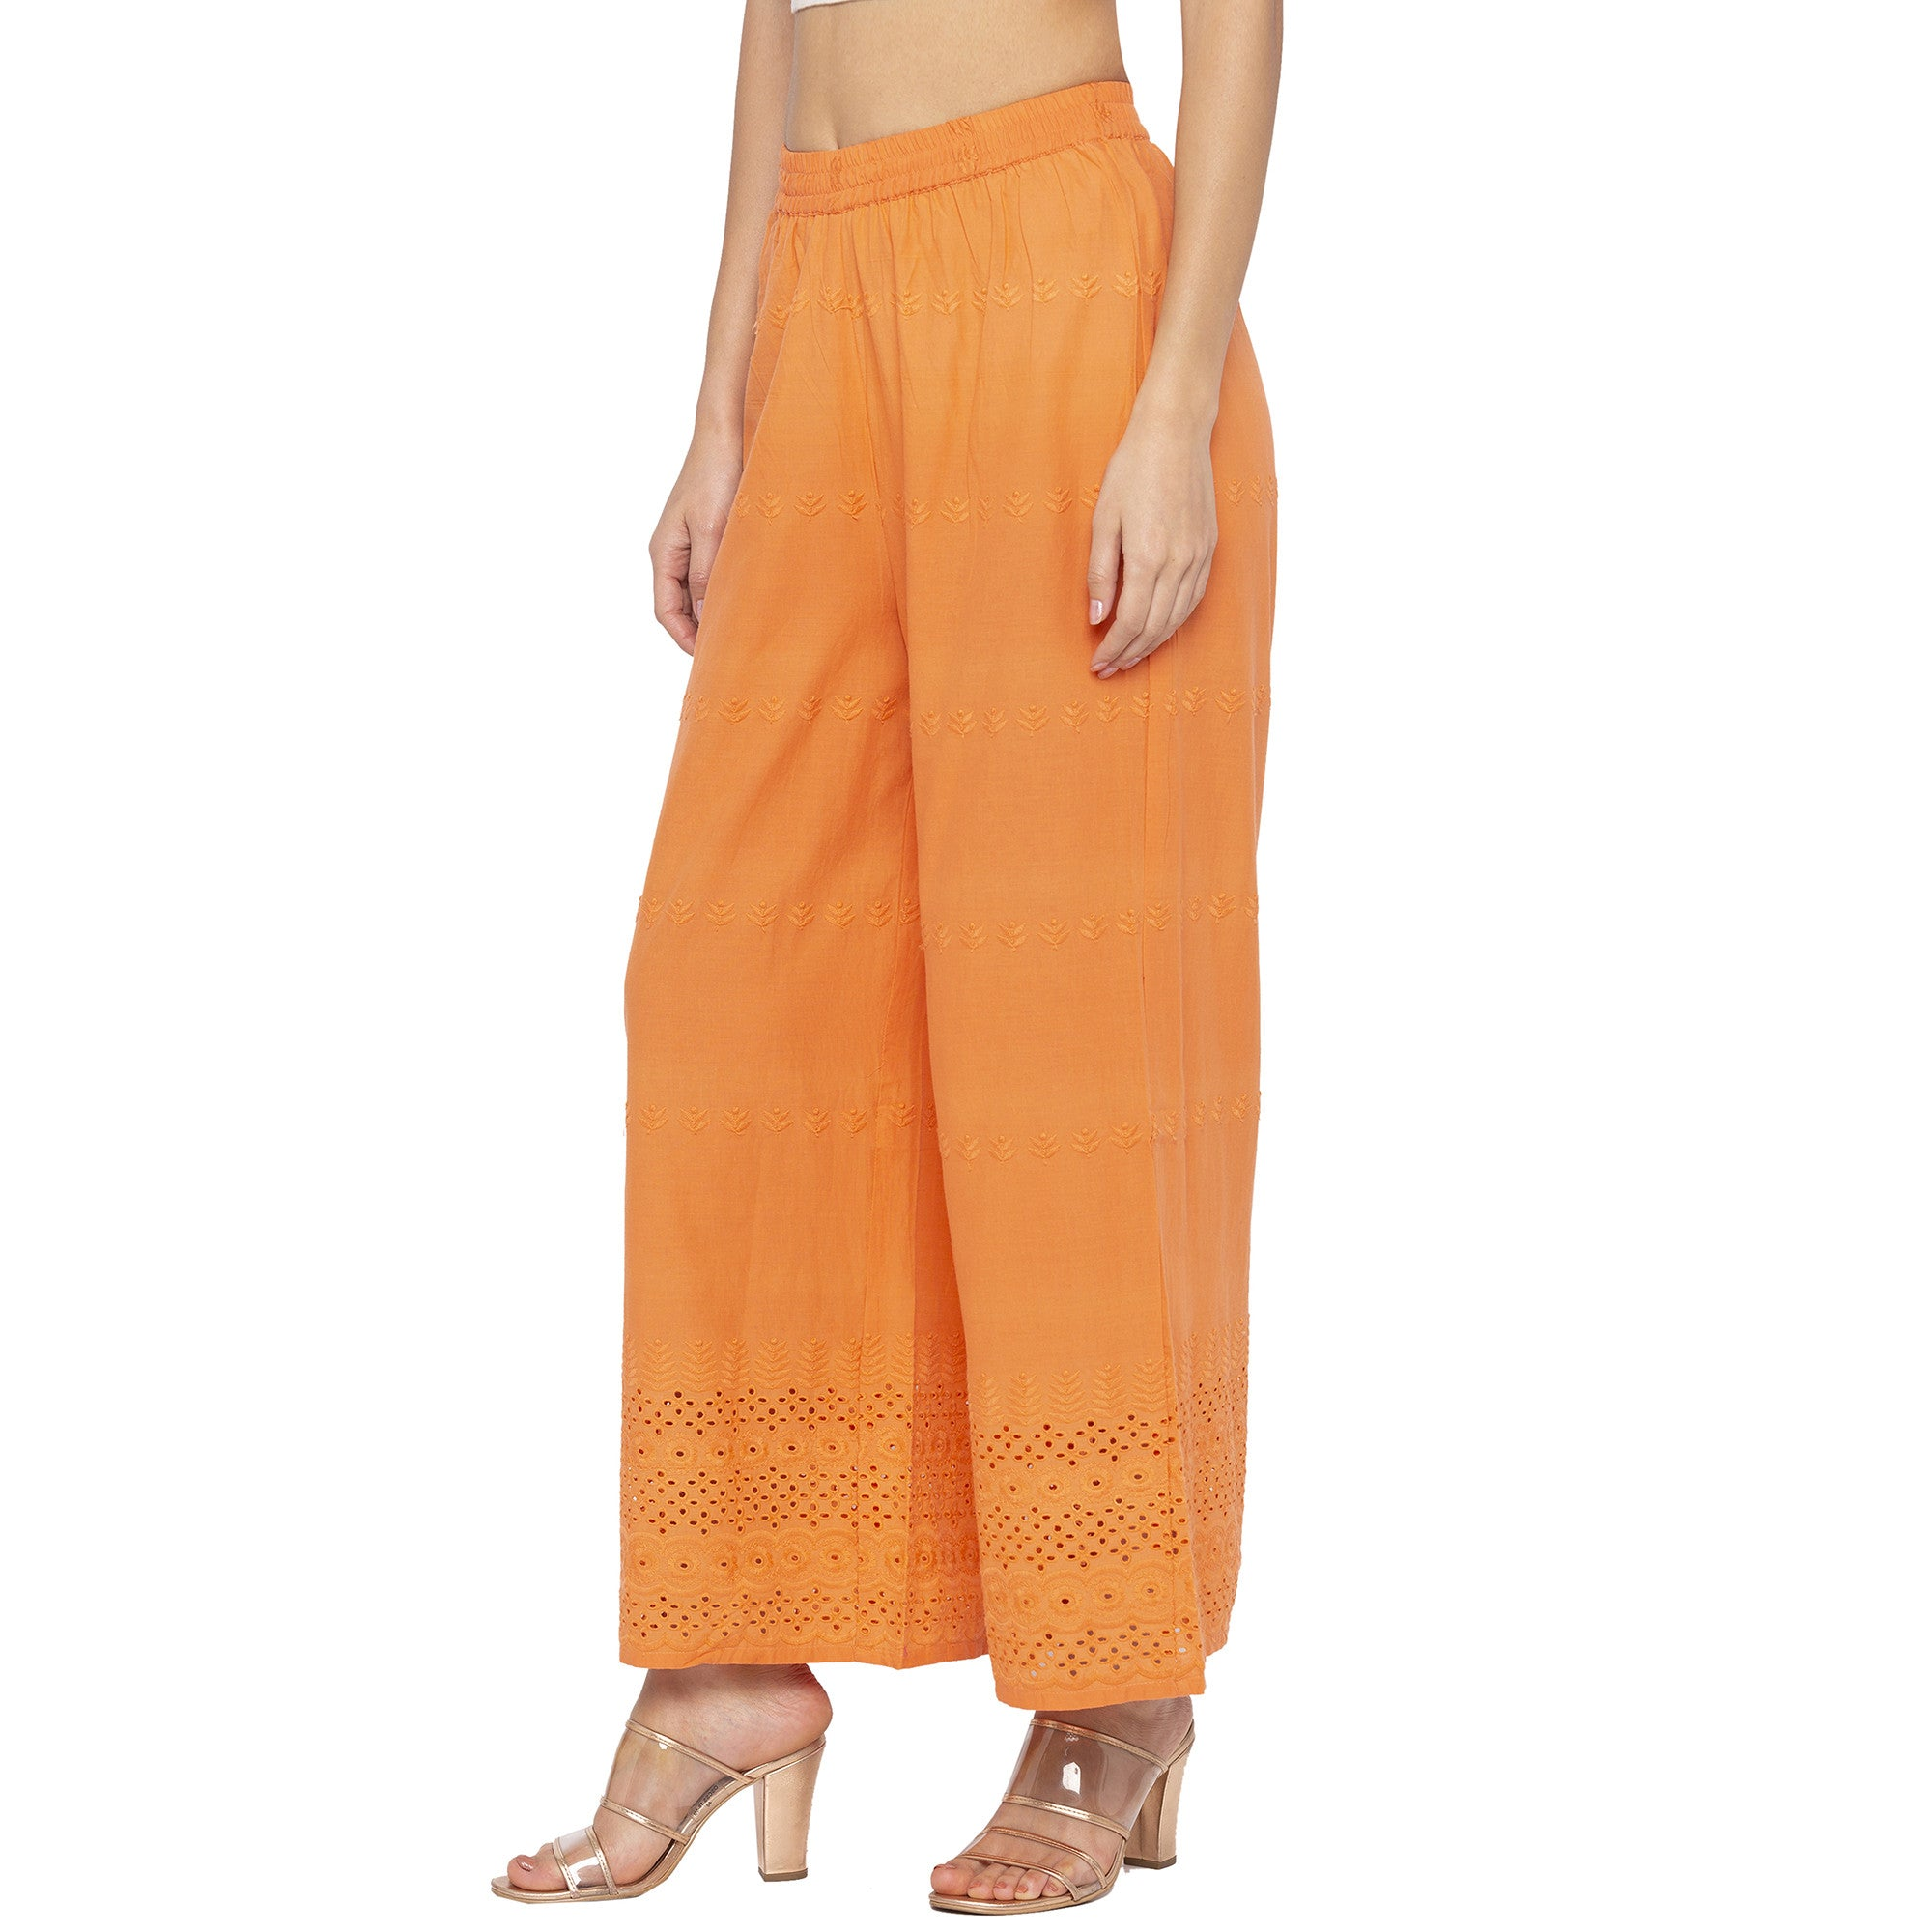 Casual Orange Color Loose Fit Regular Parallel Trousers-2